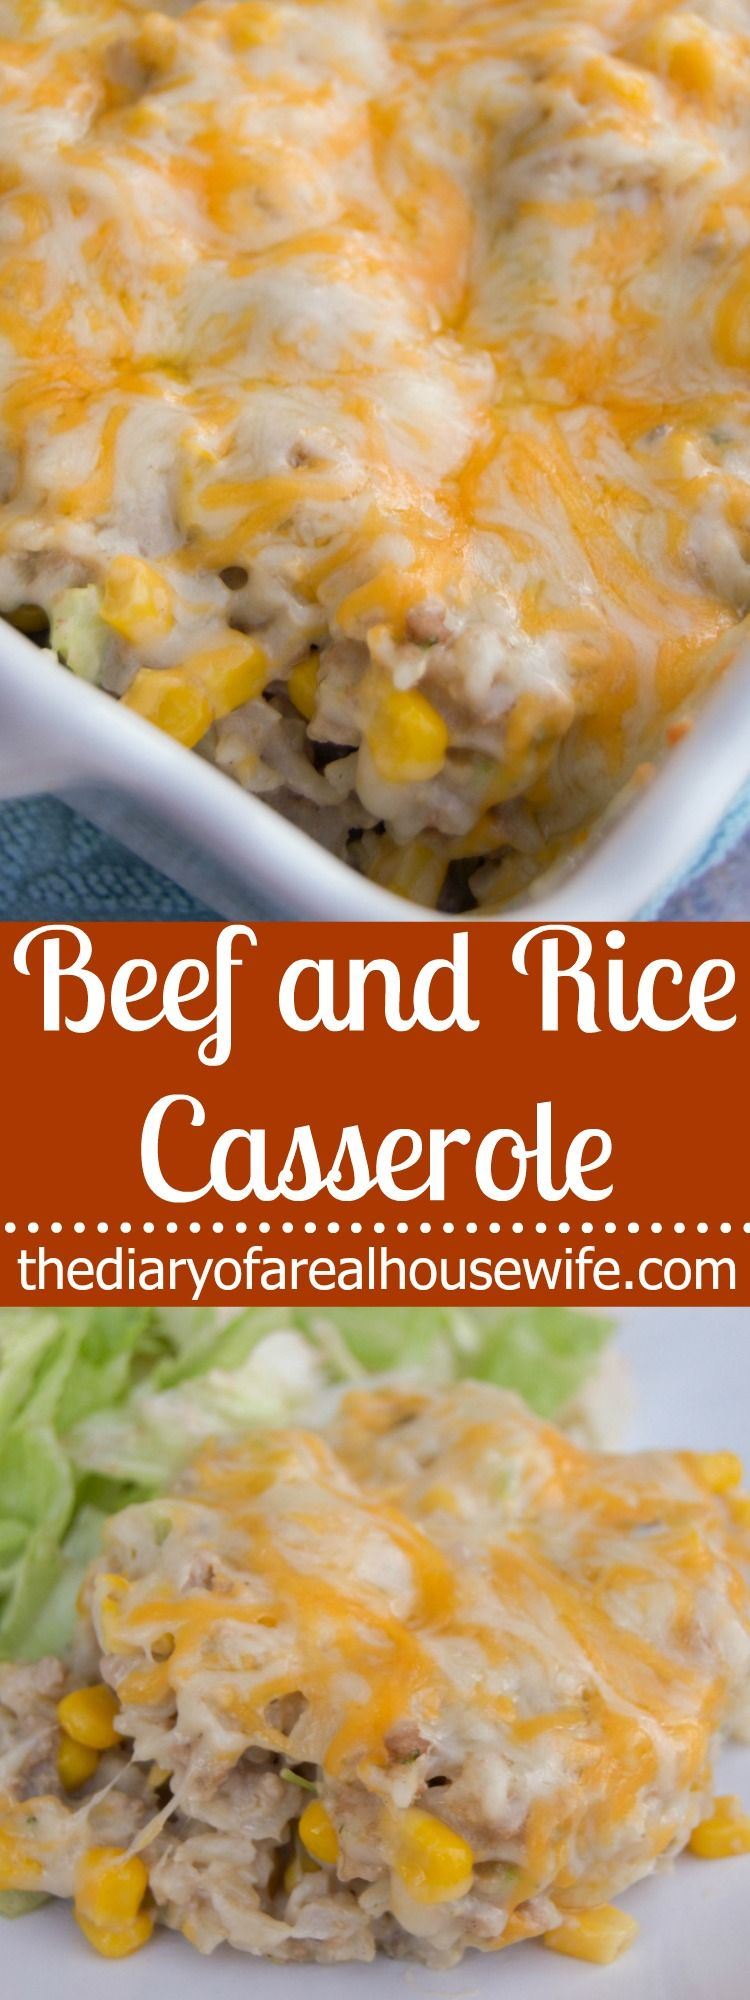 Beef And Rice Casserole The Easiest Dinner Recipe And My Entire Family Even The Little Ones Loved It Dinner With Ground Beef Beef Dinner Recipes